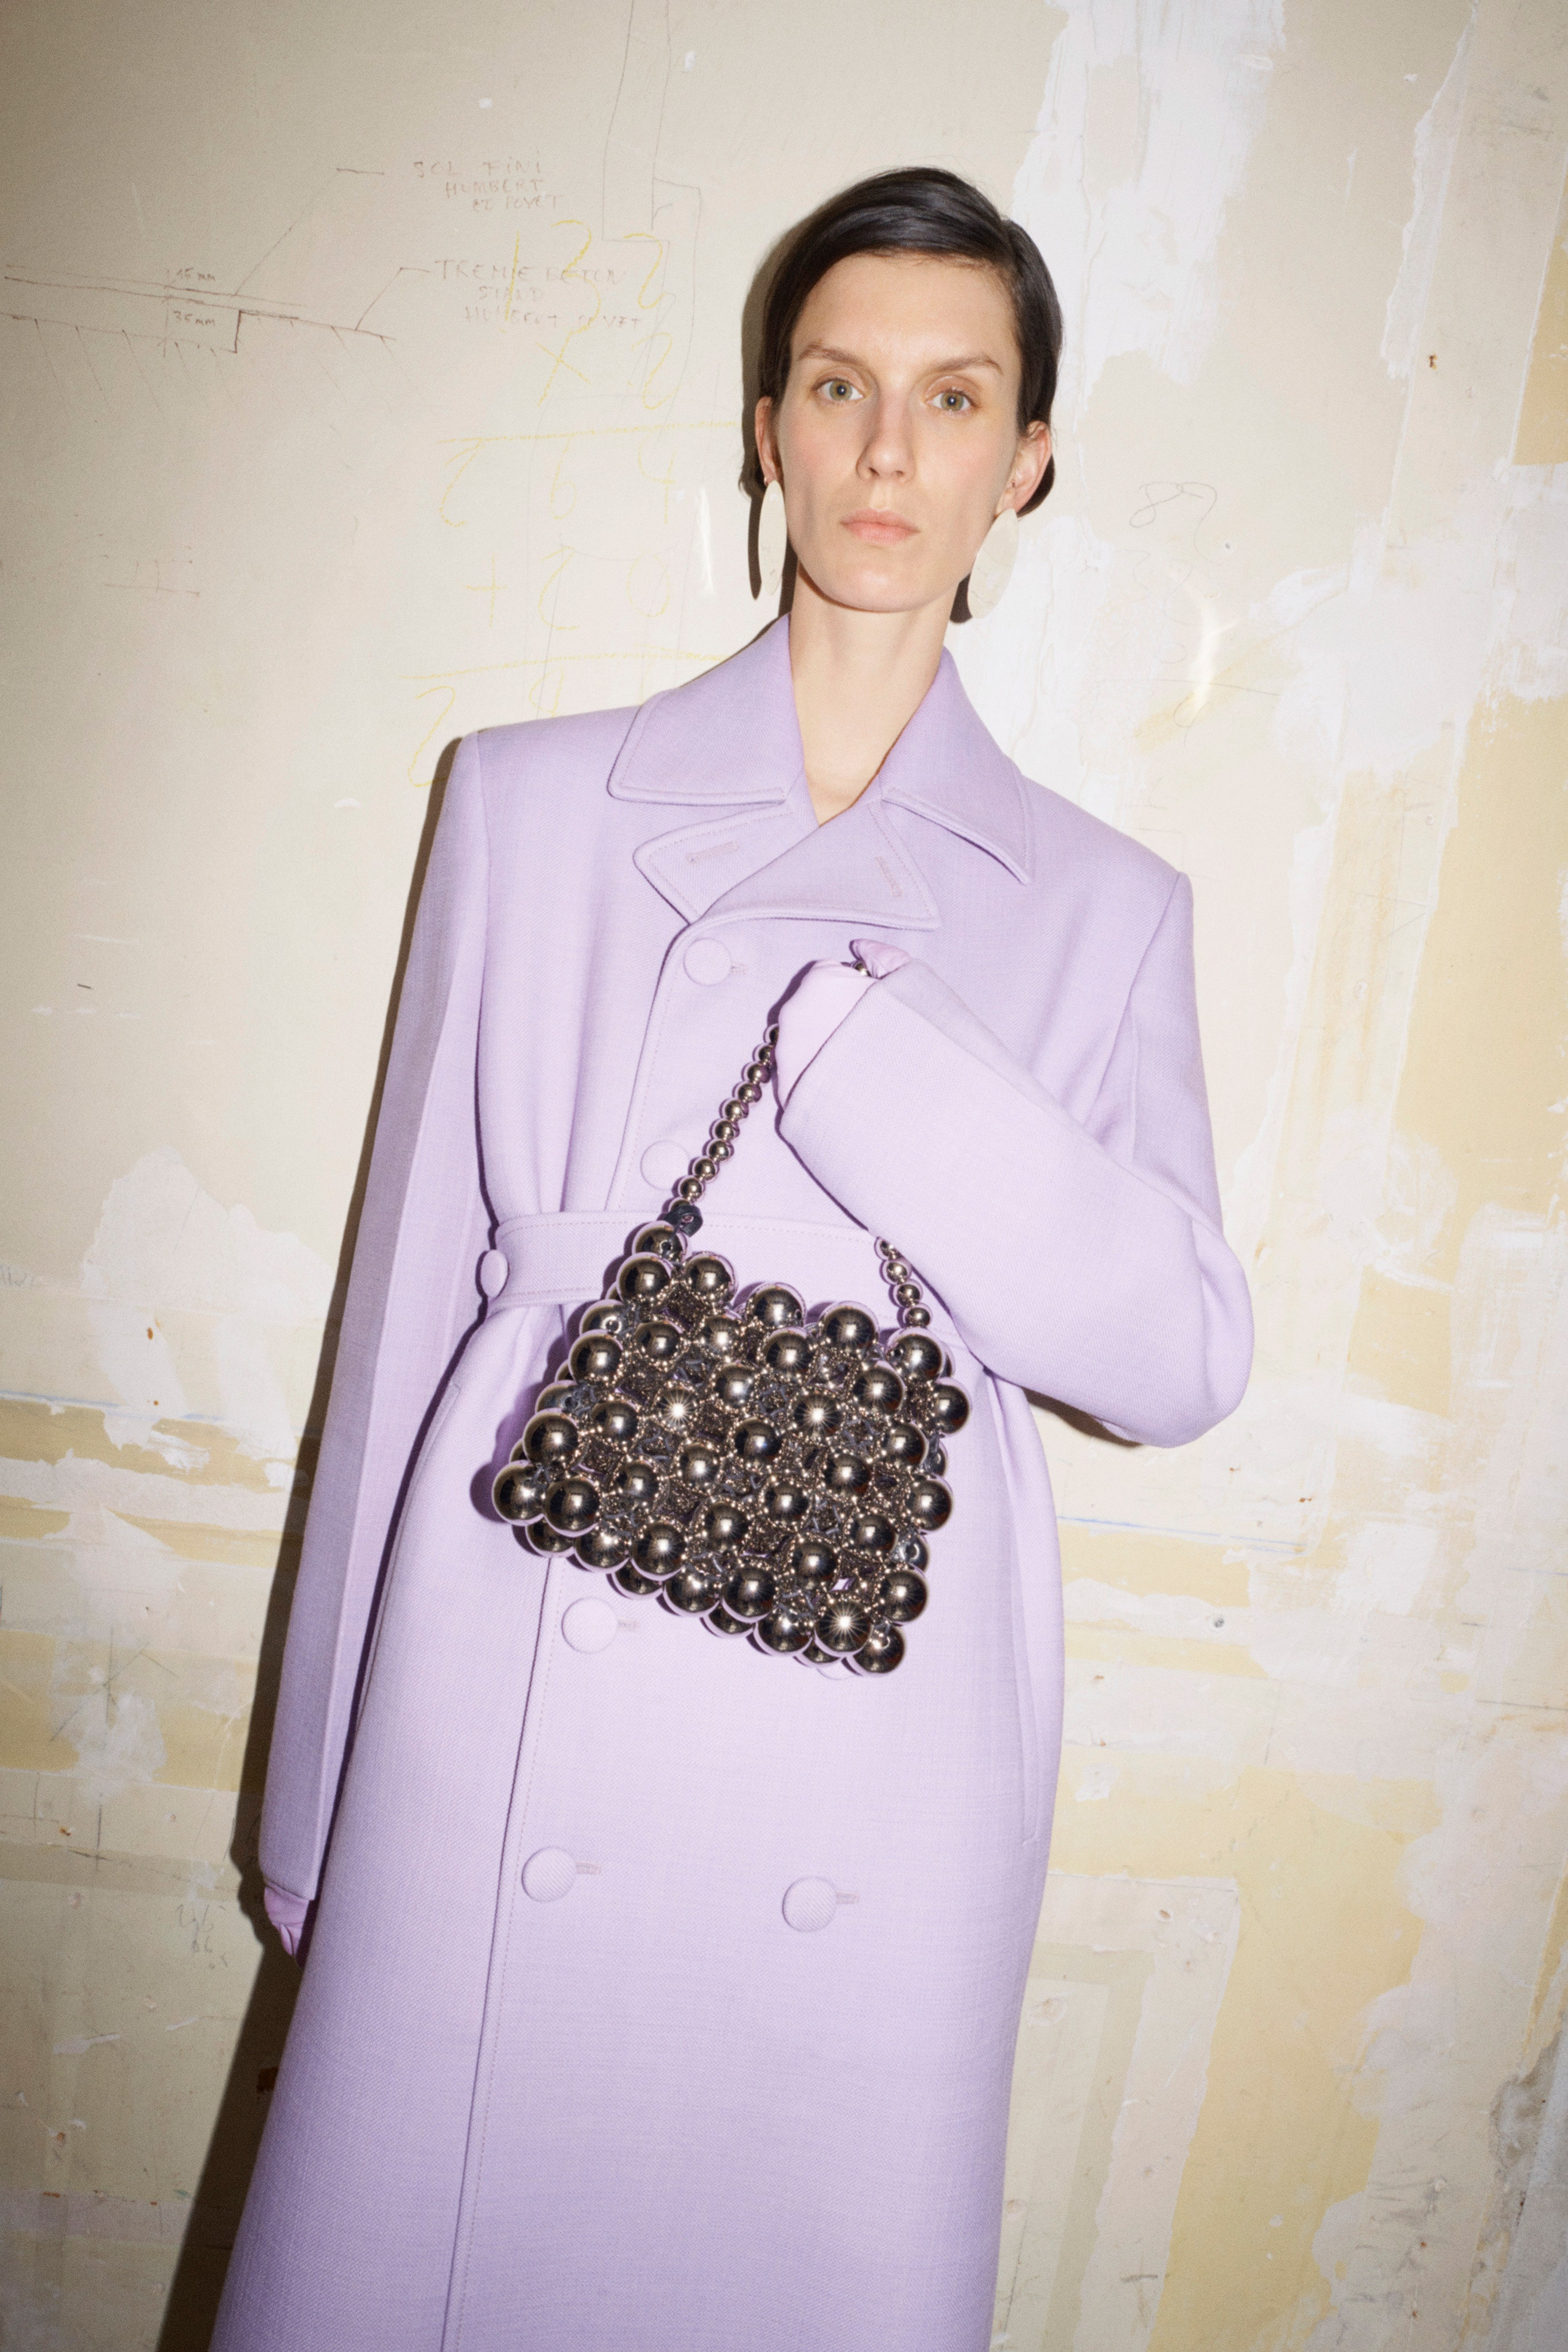 For walks in the fresh air: A seasonal collection of Jil Sander arrived at Asthik (photo 7)